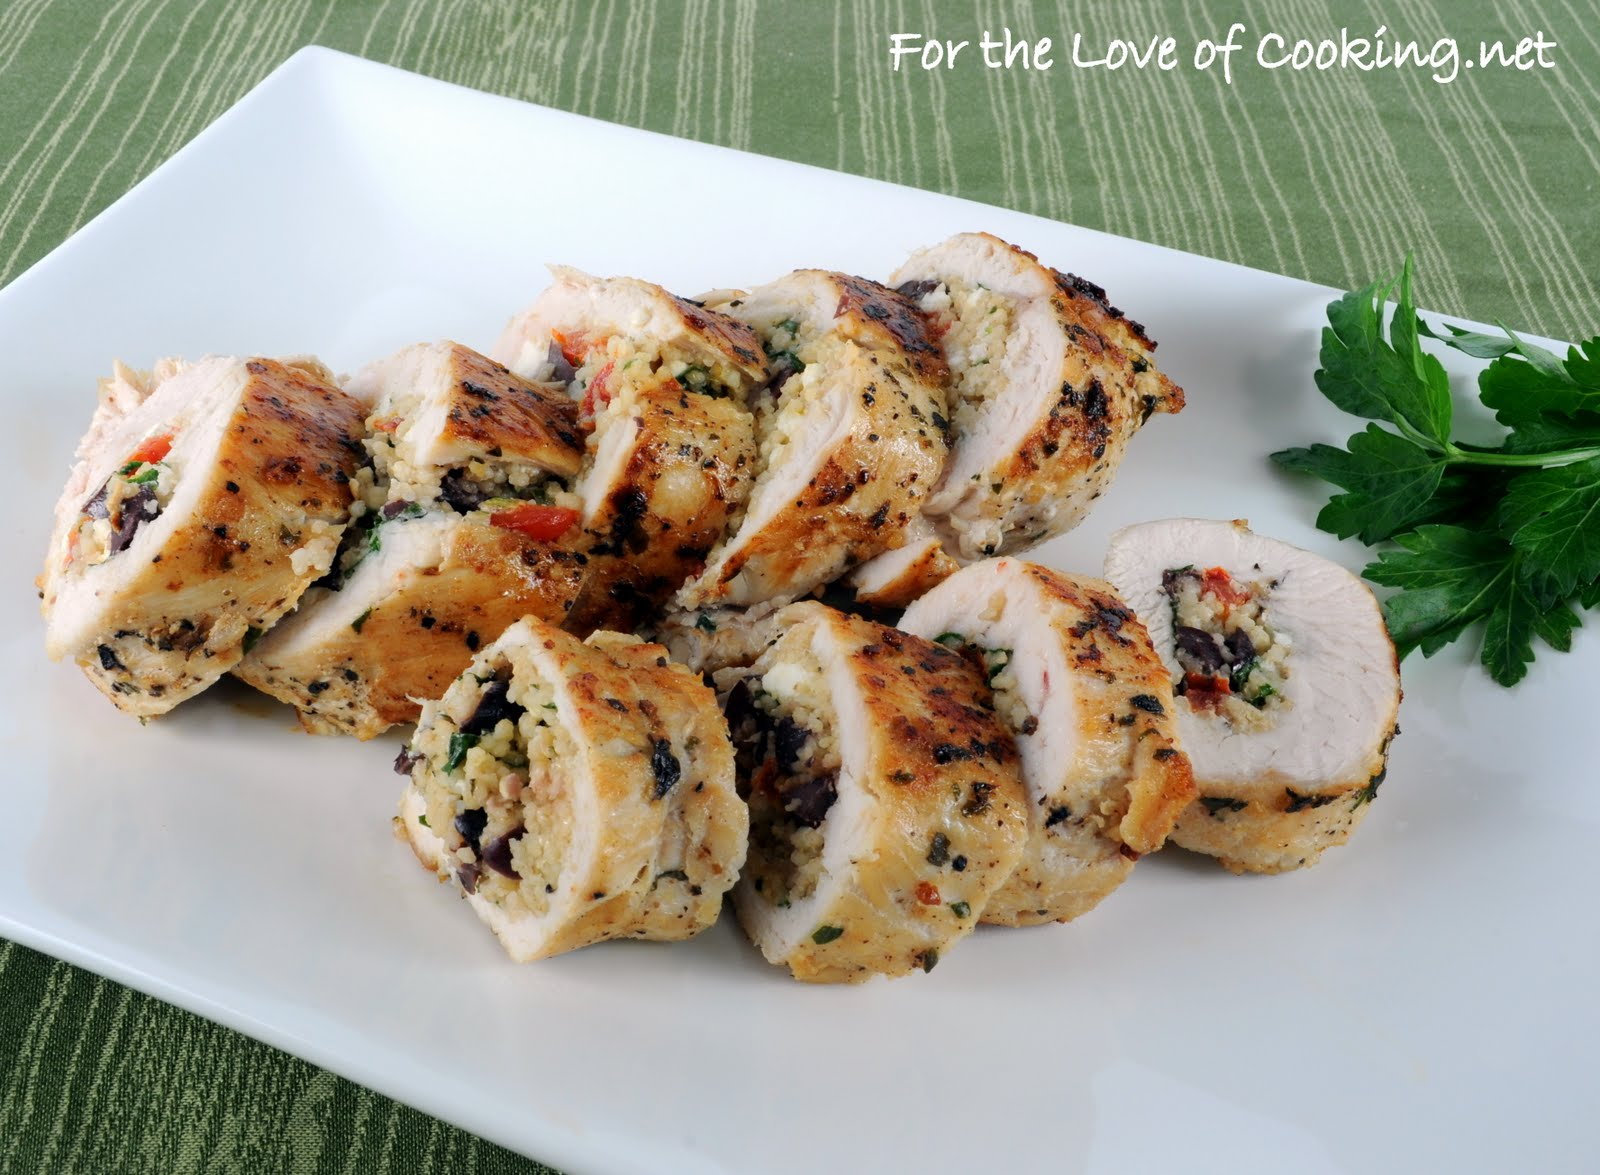 Couscous Stuffed Chicken Breasts | For the Love of Cooking